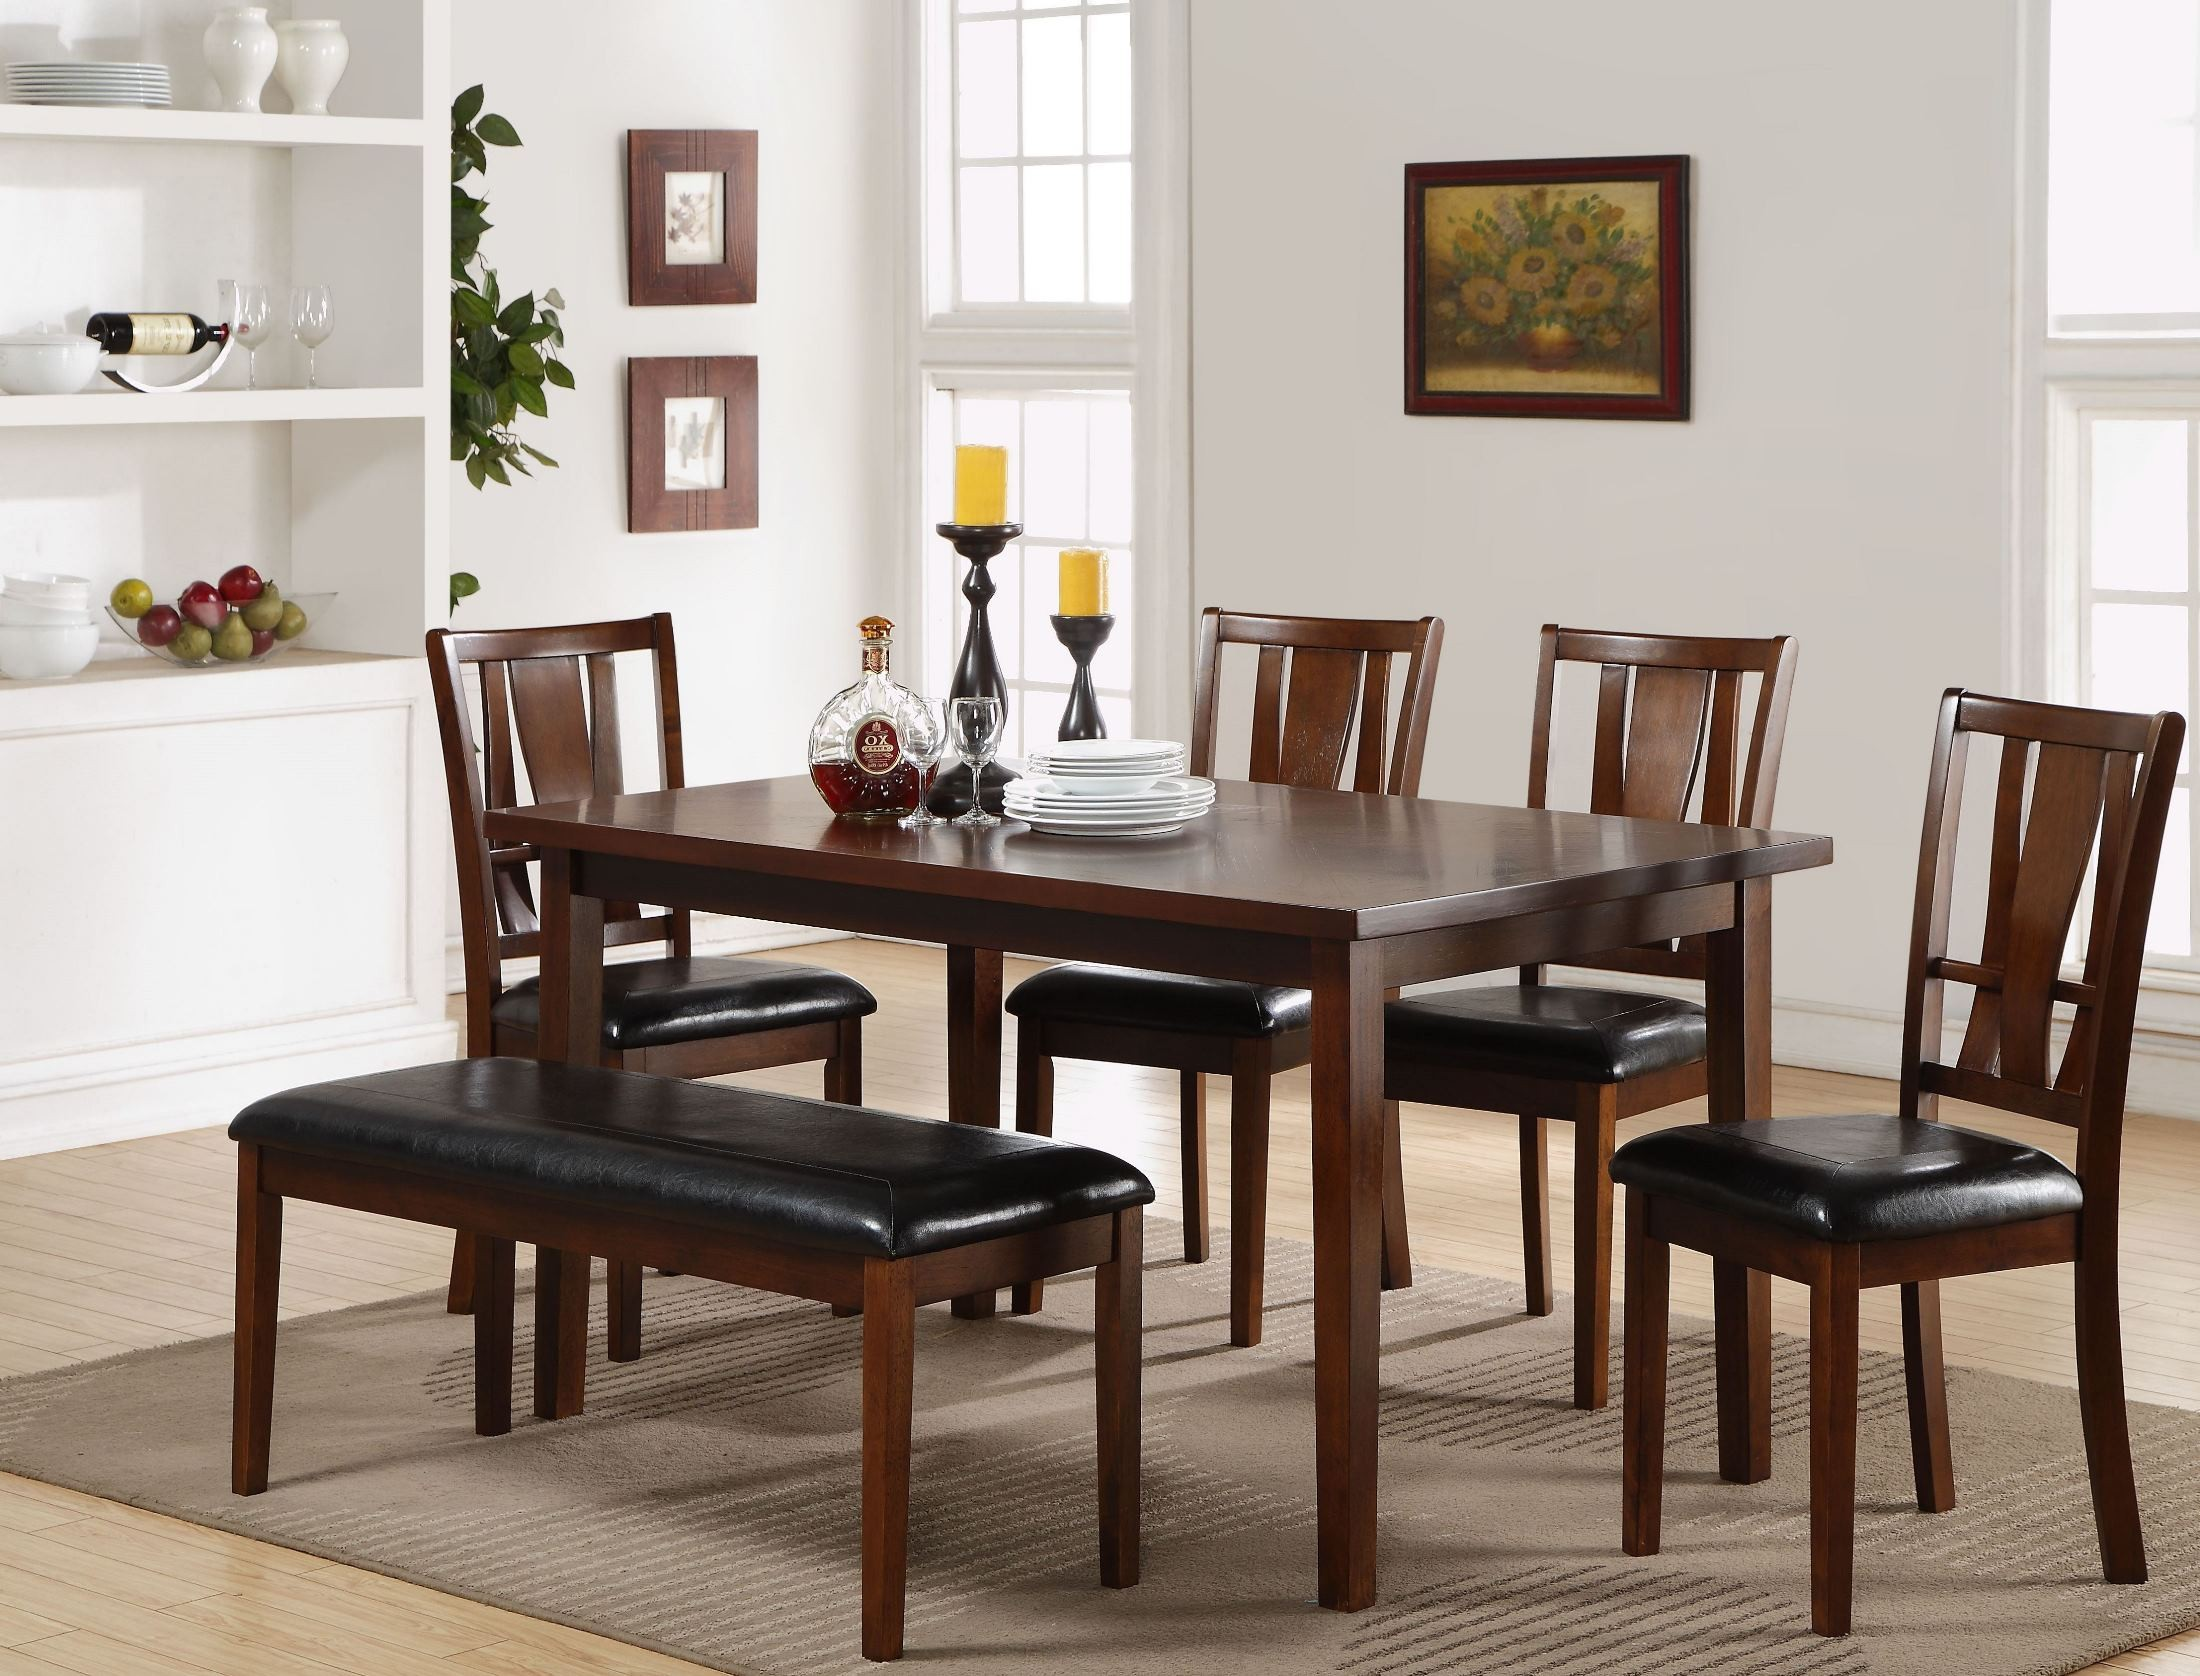 6 Piece Dixon Dark Espresso Dining Room Set